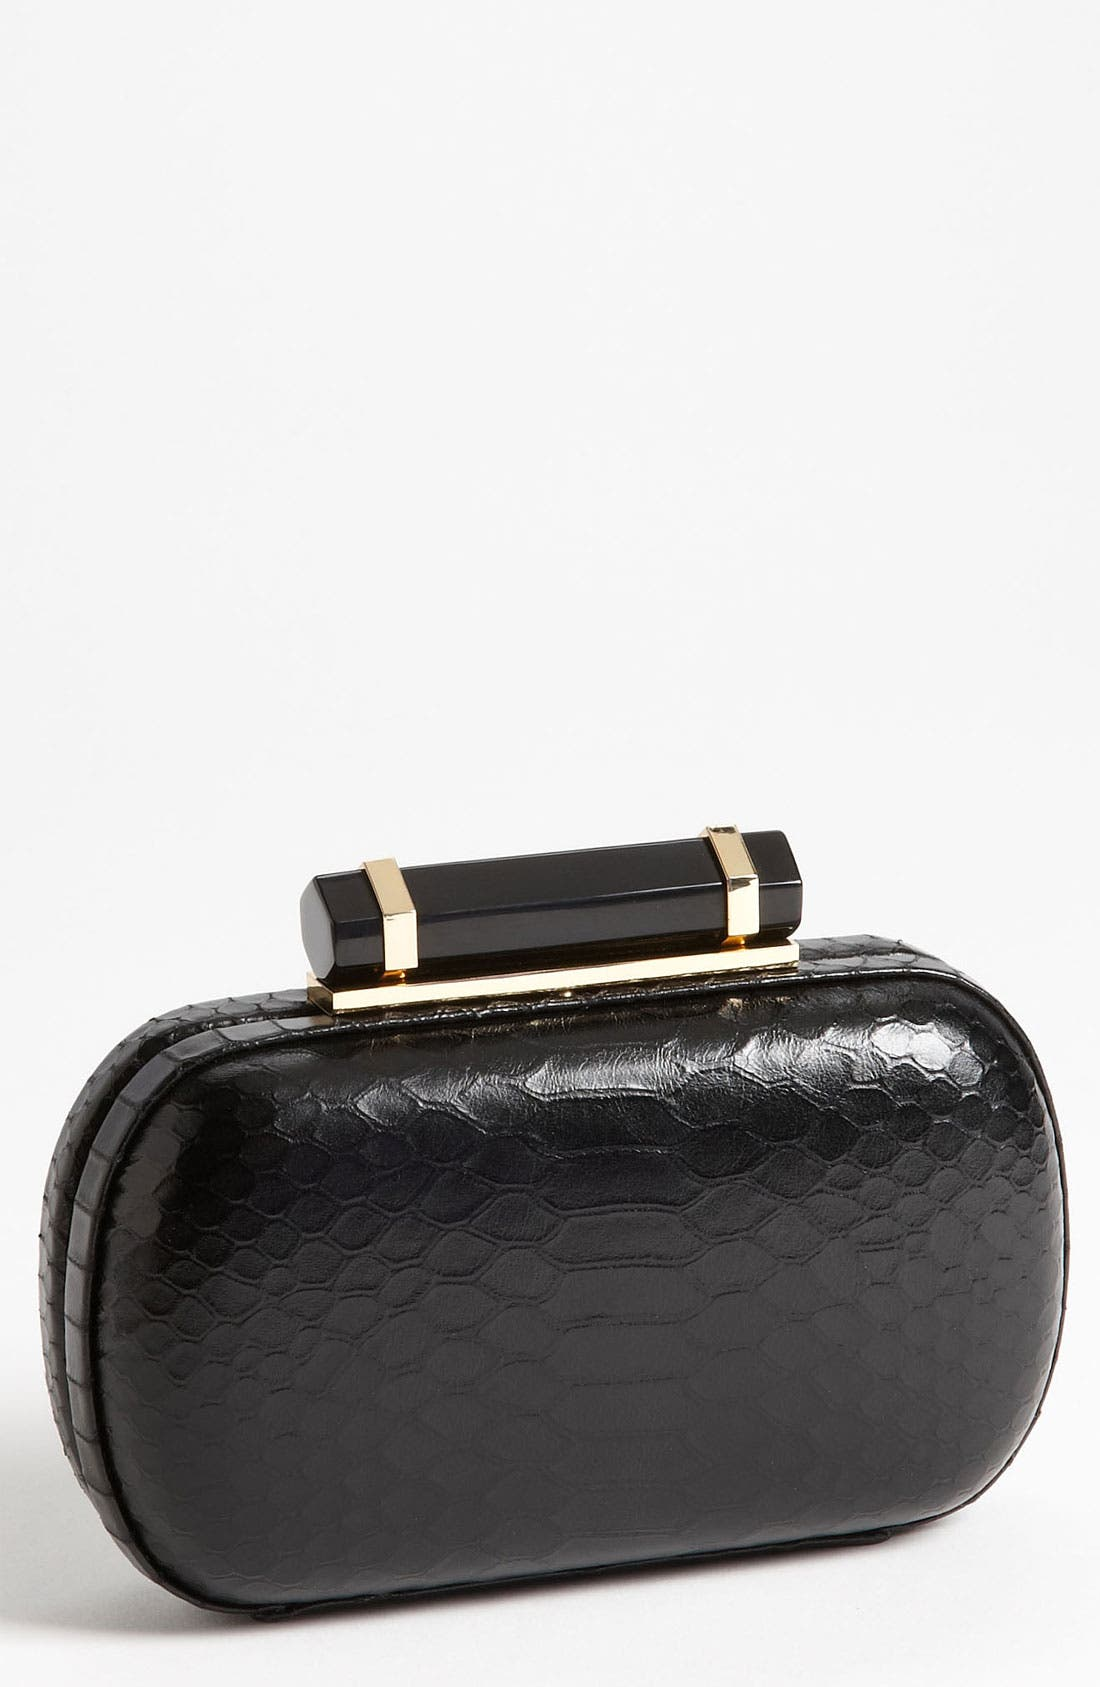 Main Image - Vince Camuto 'Onyx French' Clutch